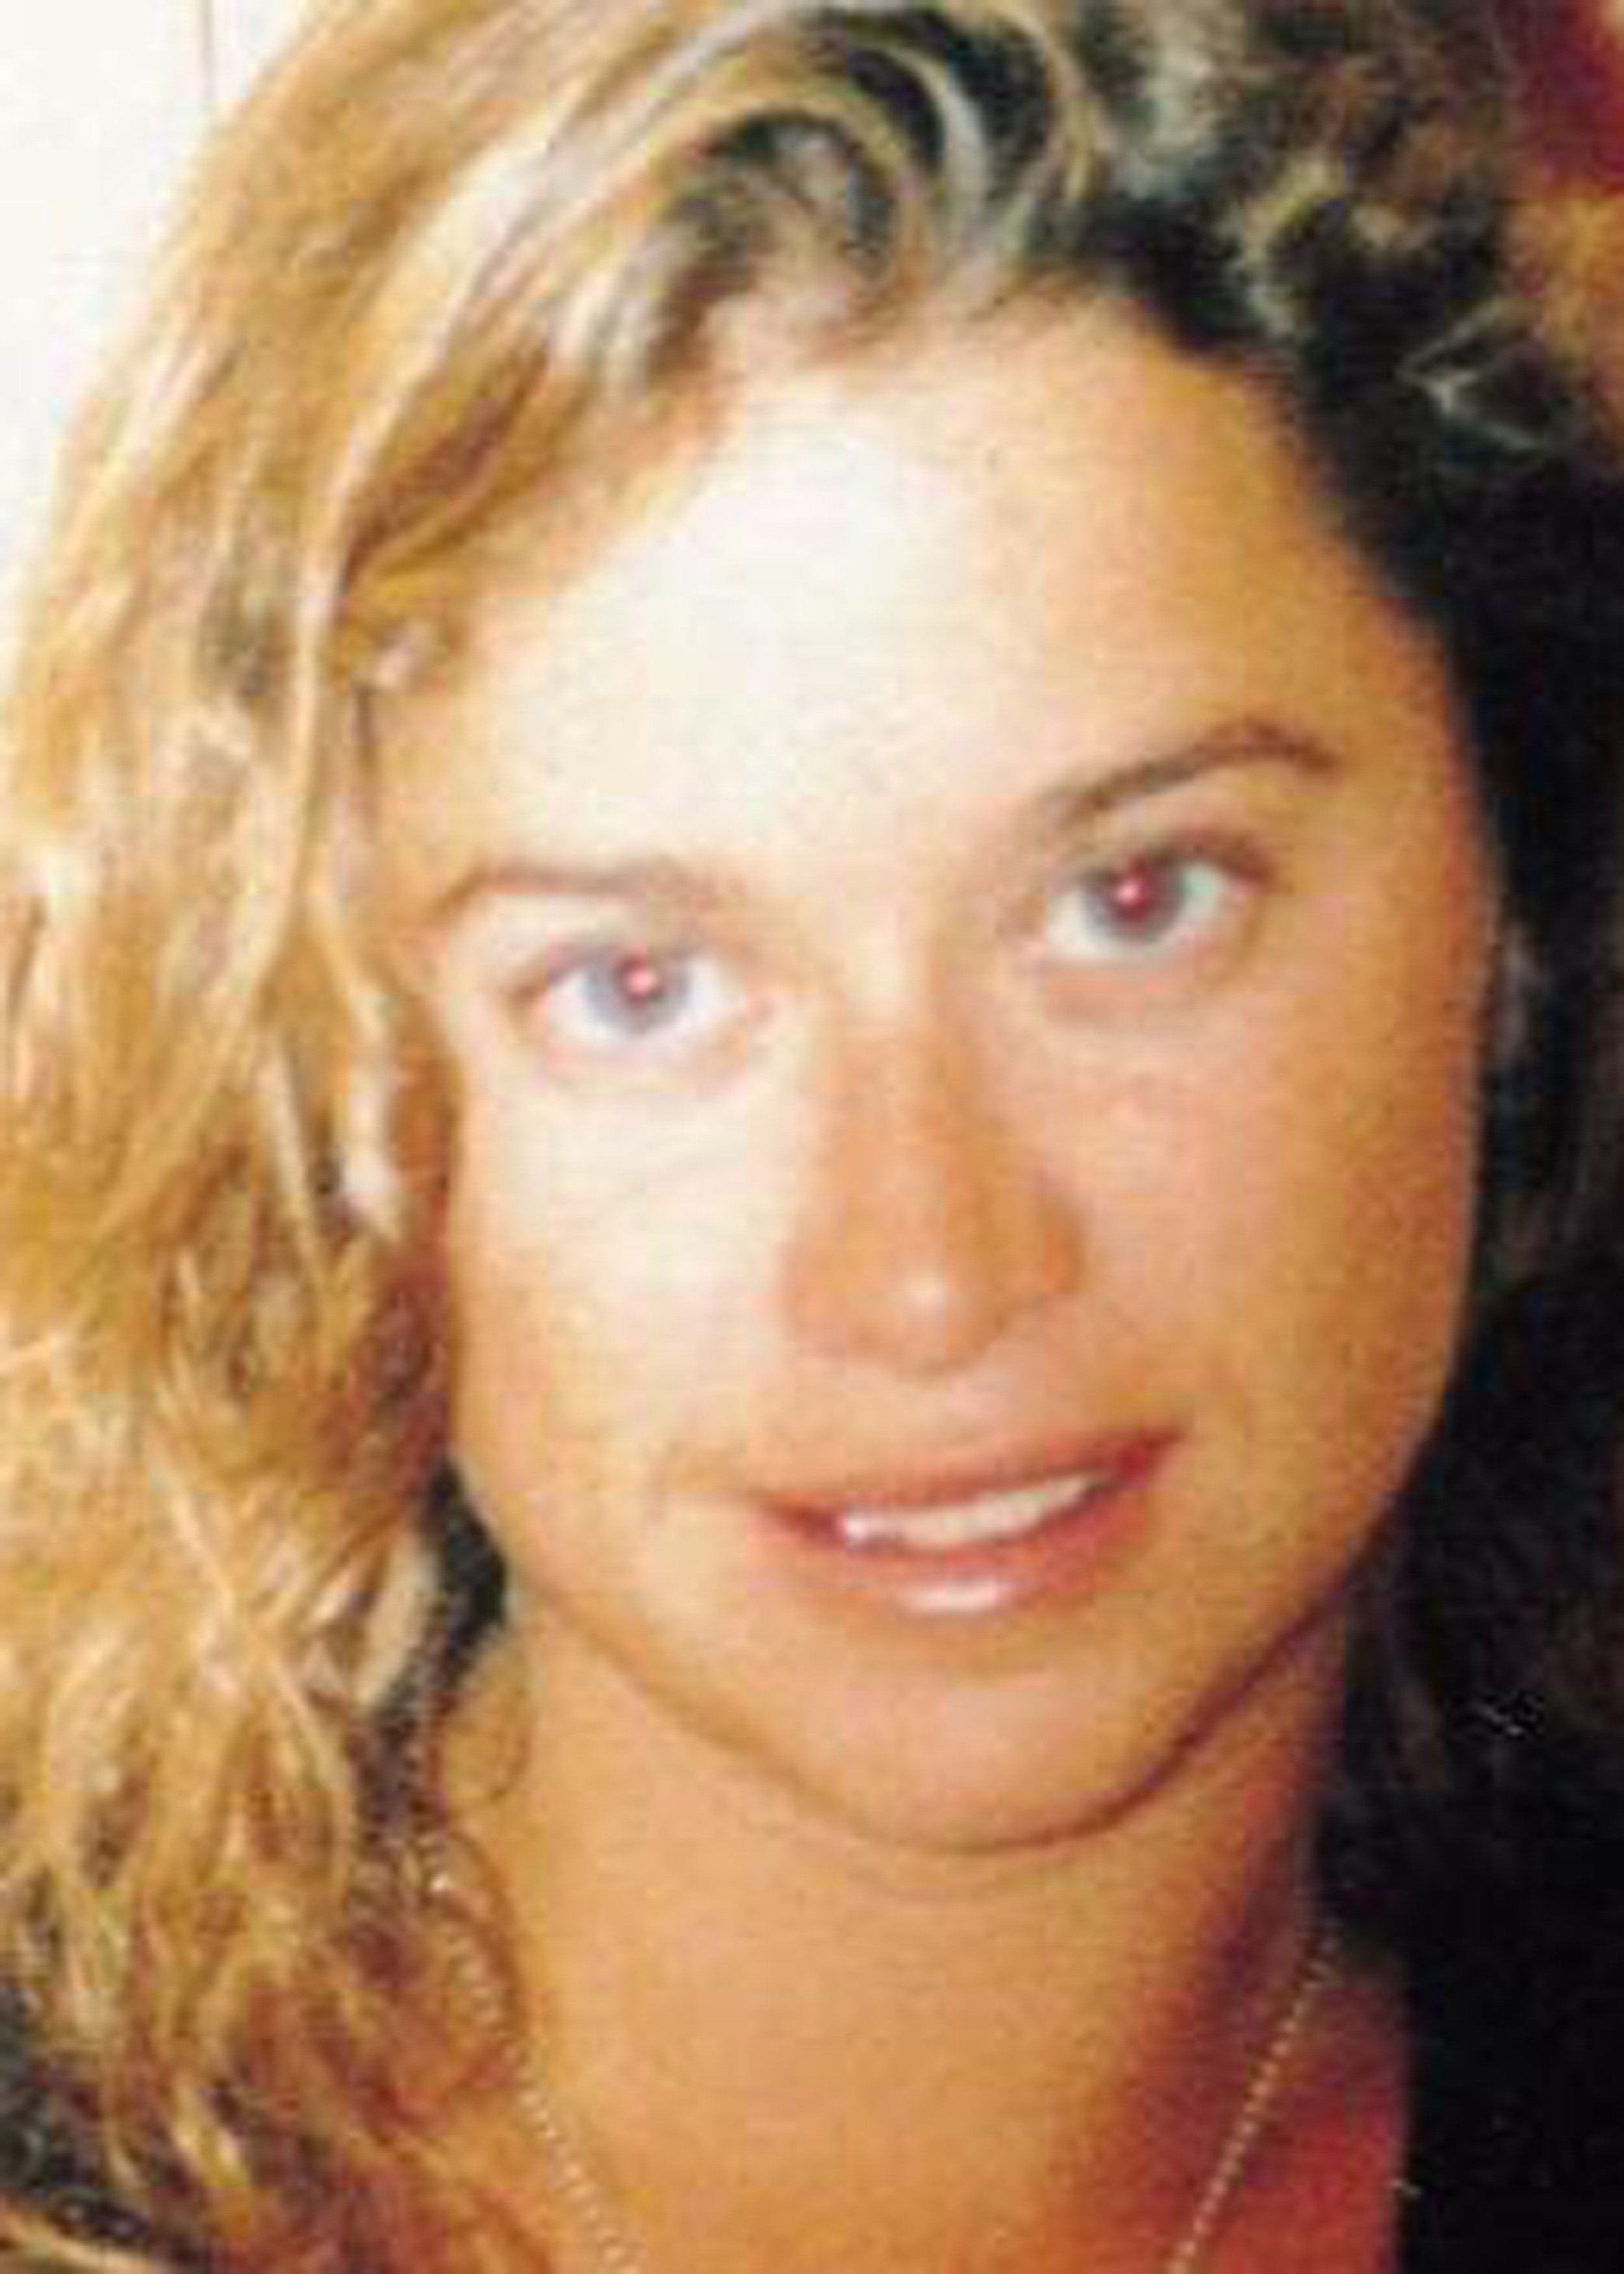 Ciara Glennon disappeared from the Claremont area in March 1997.